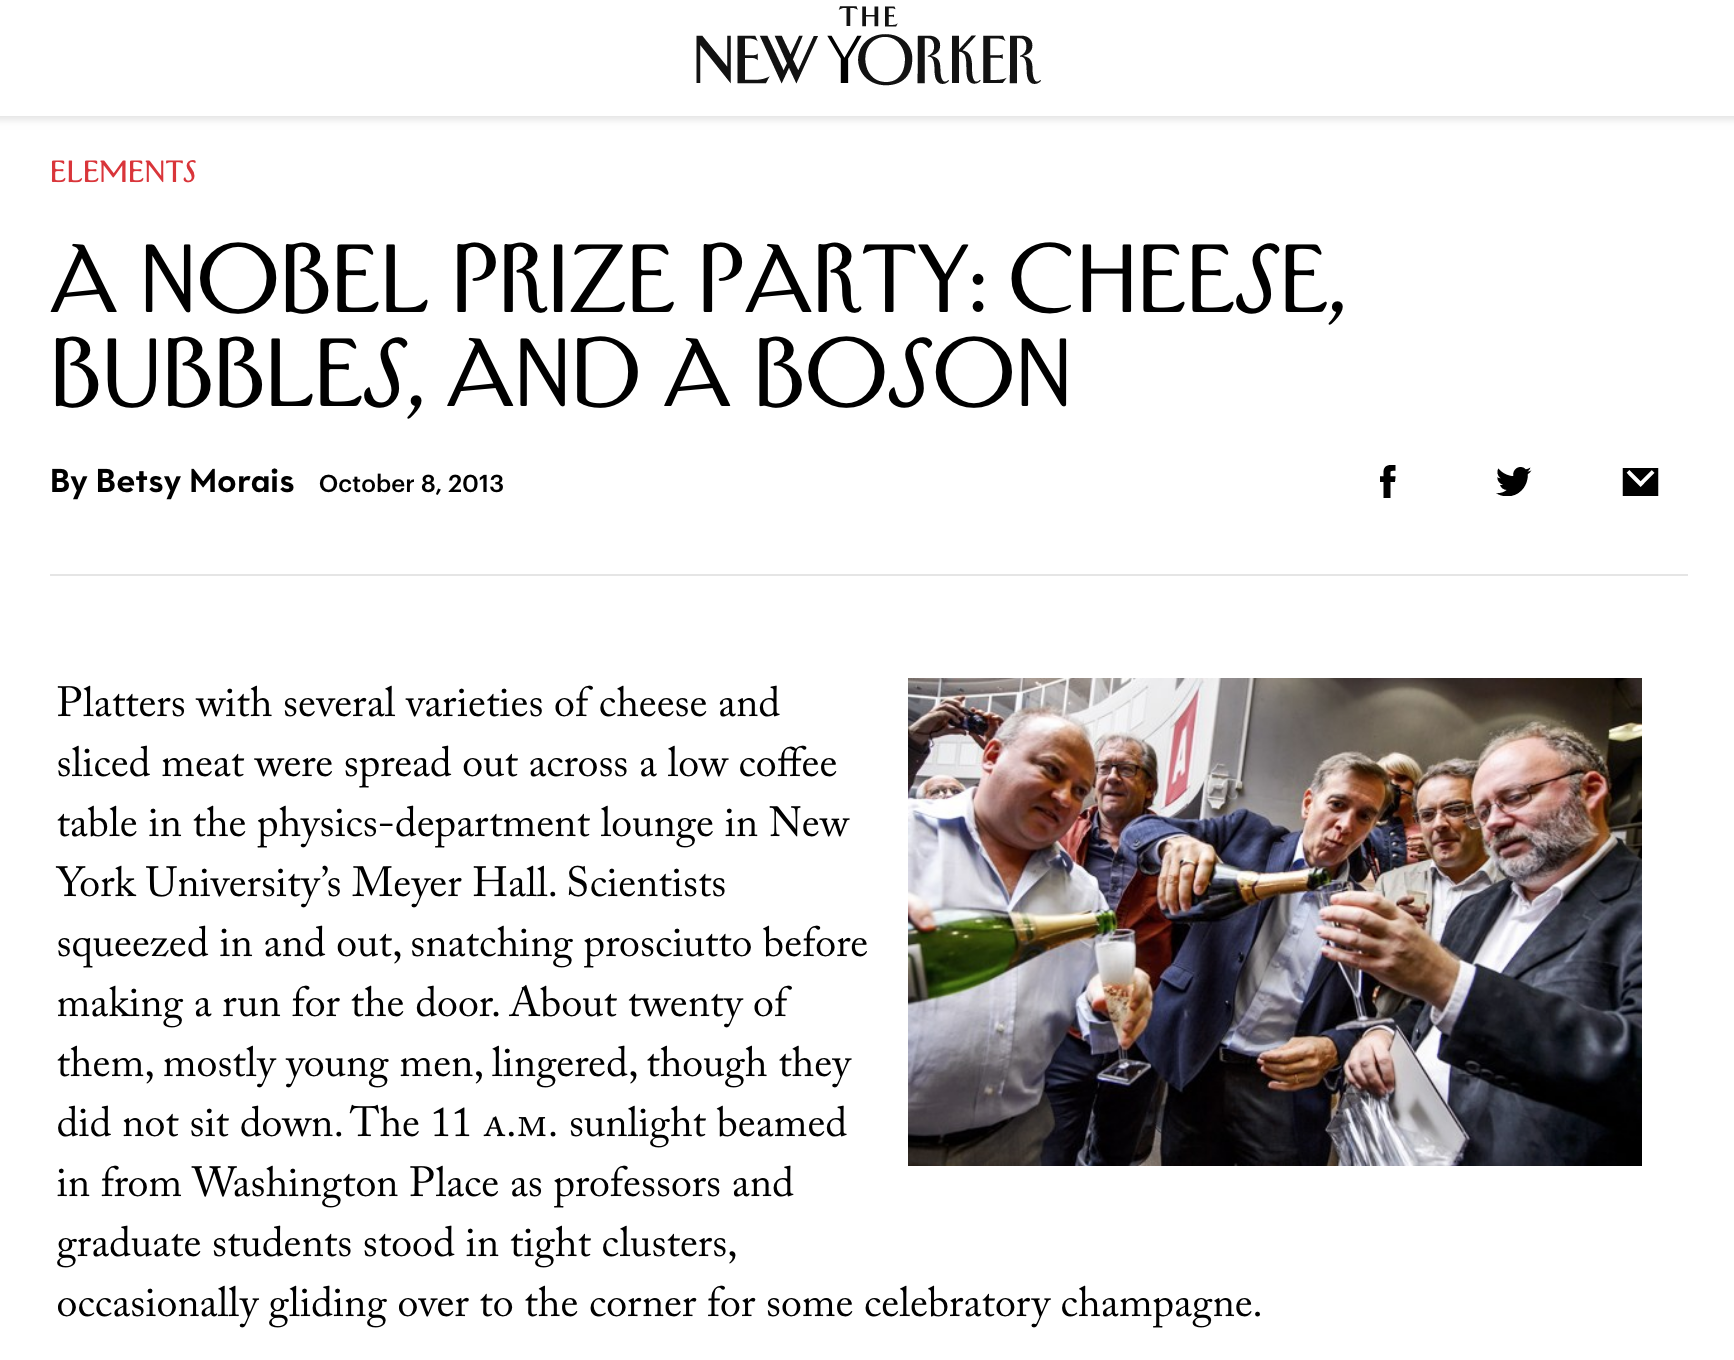 New Yorker article about the party at the NYU Physics Department